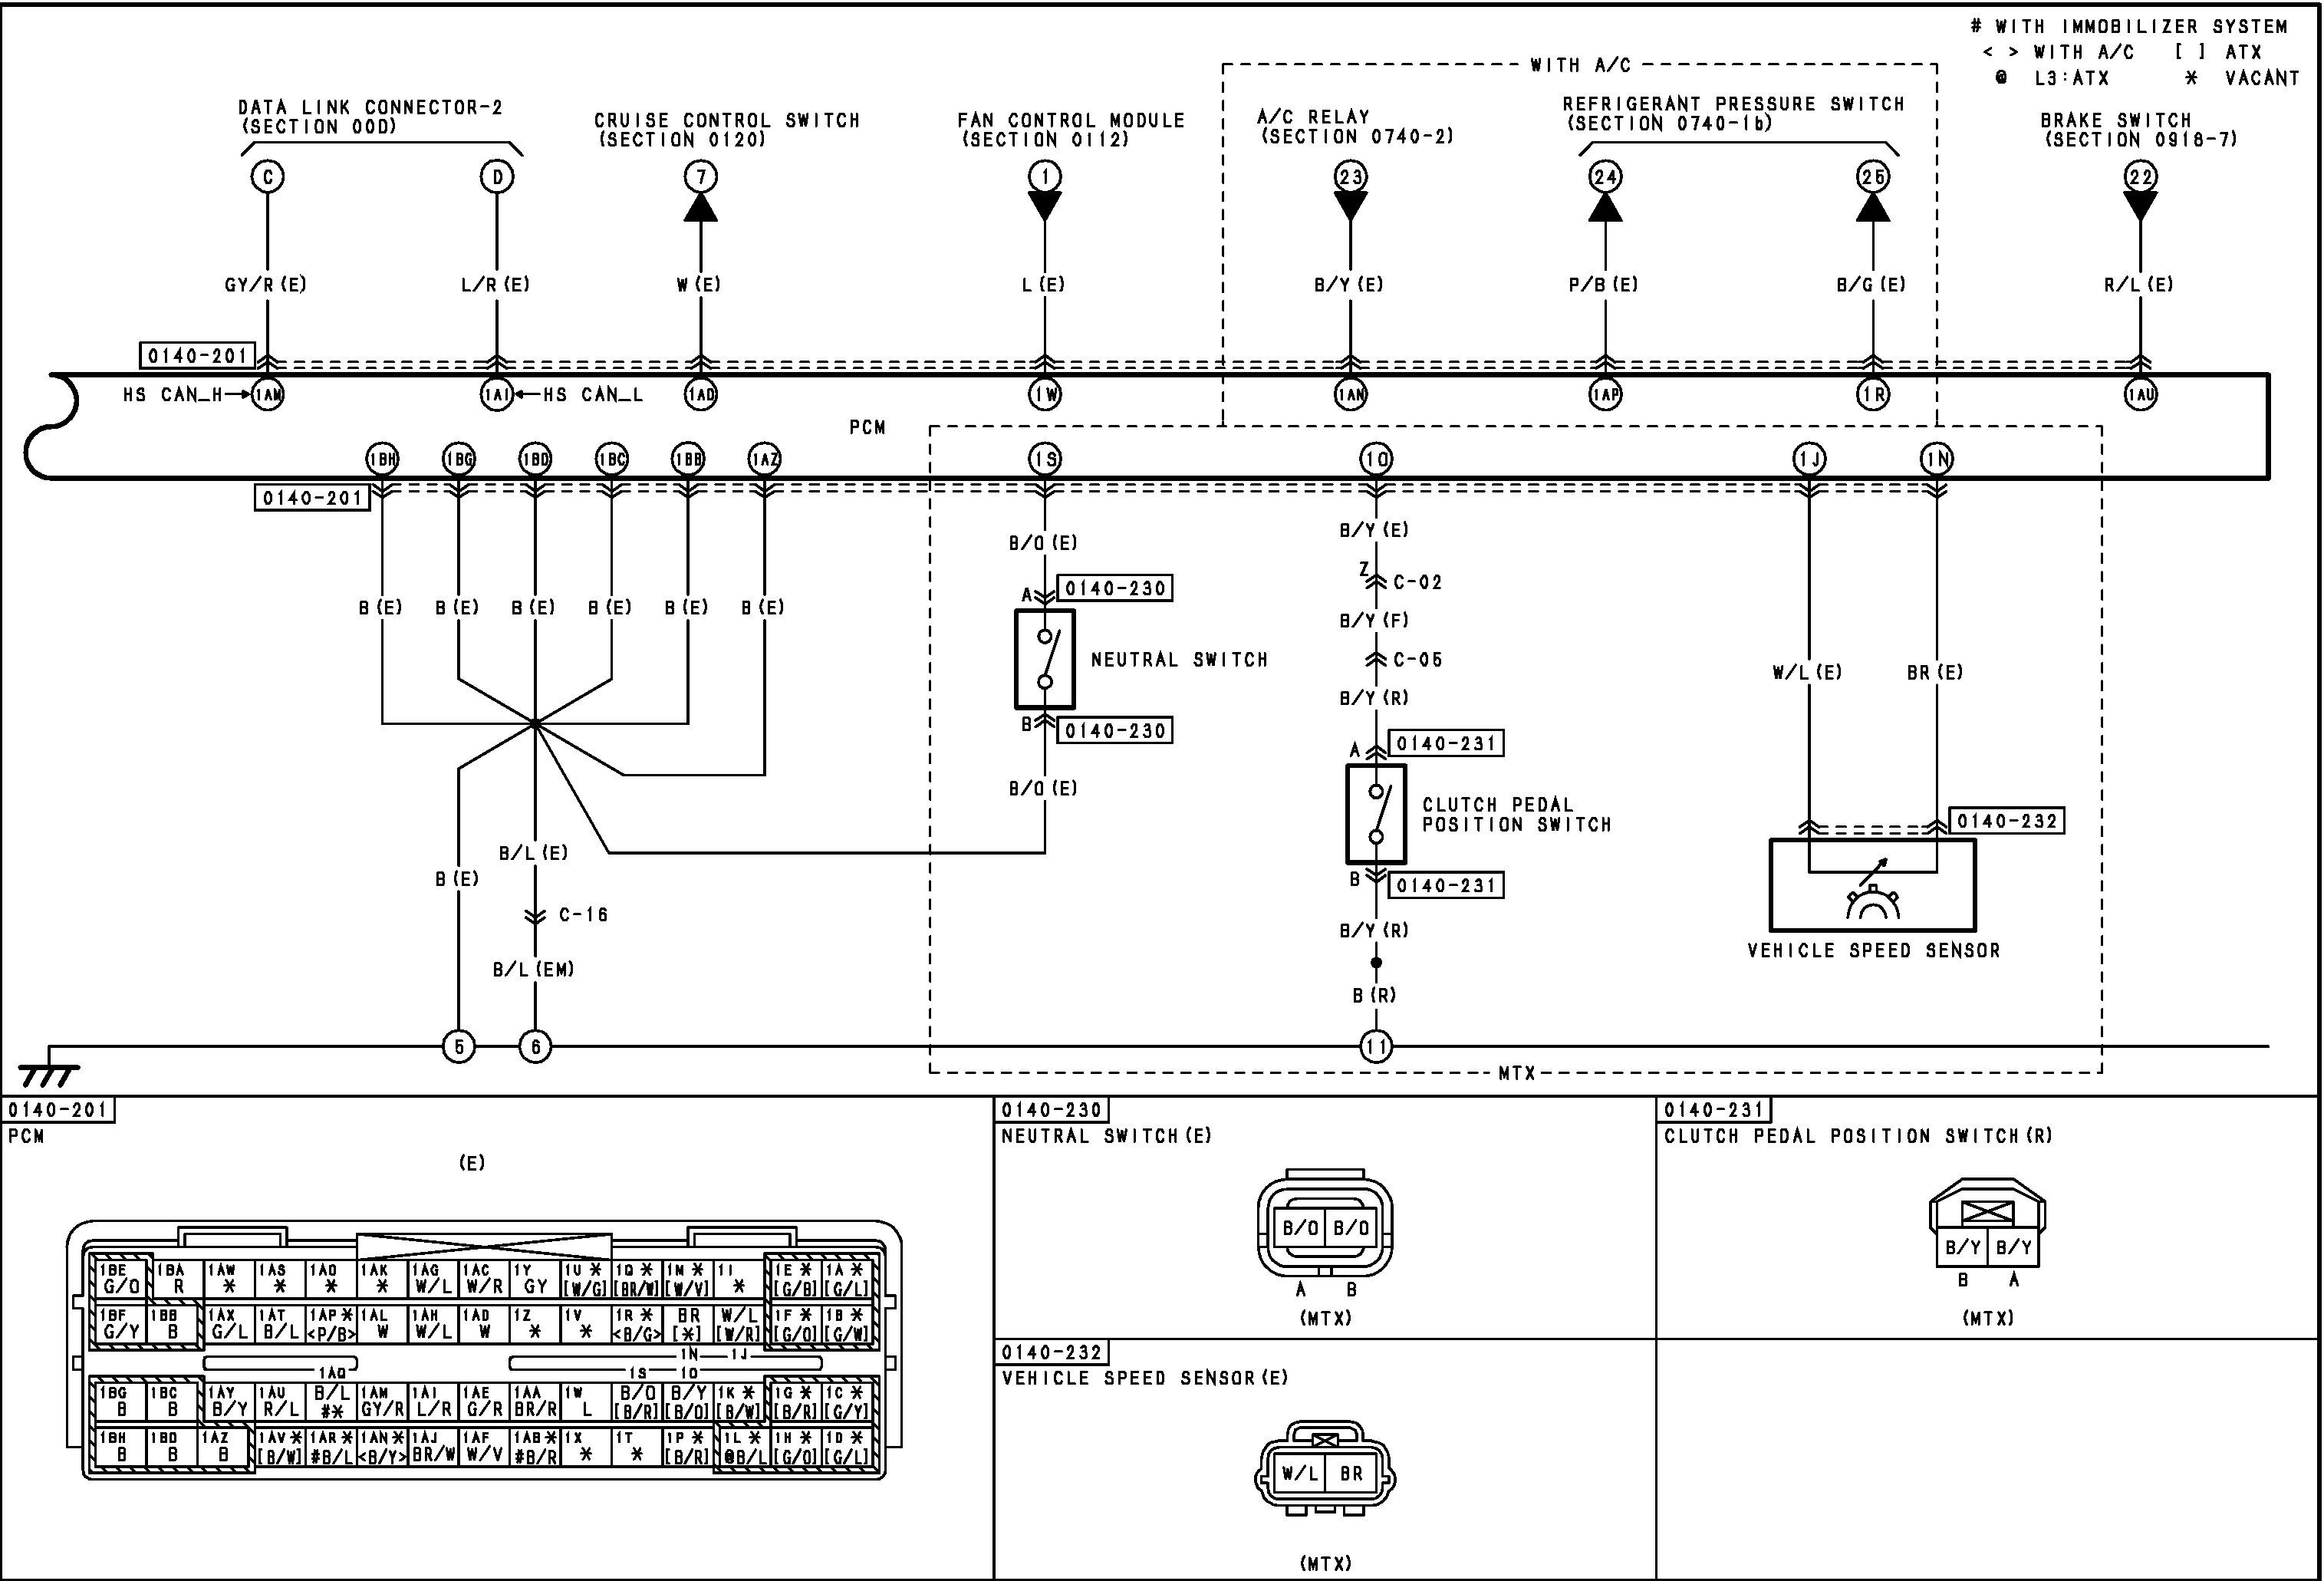 2006 mazda 3 wiring diagram pdf 2006 wiring diagrams online mazda 3 wiring diagram radio mazda wiring diagrams